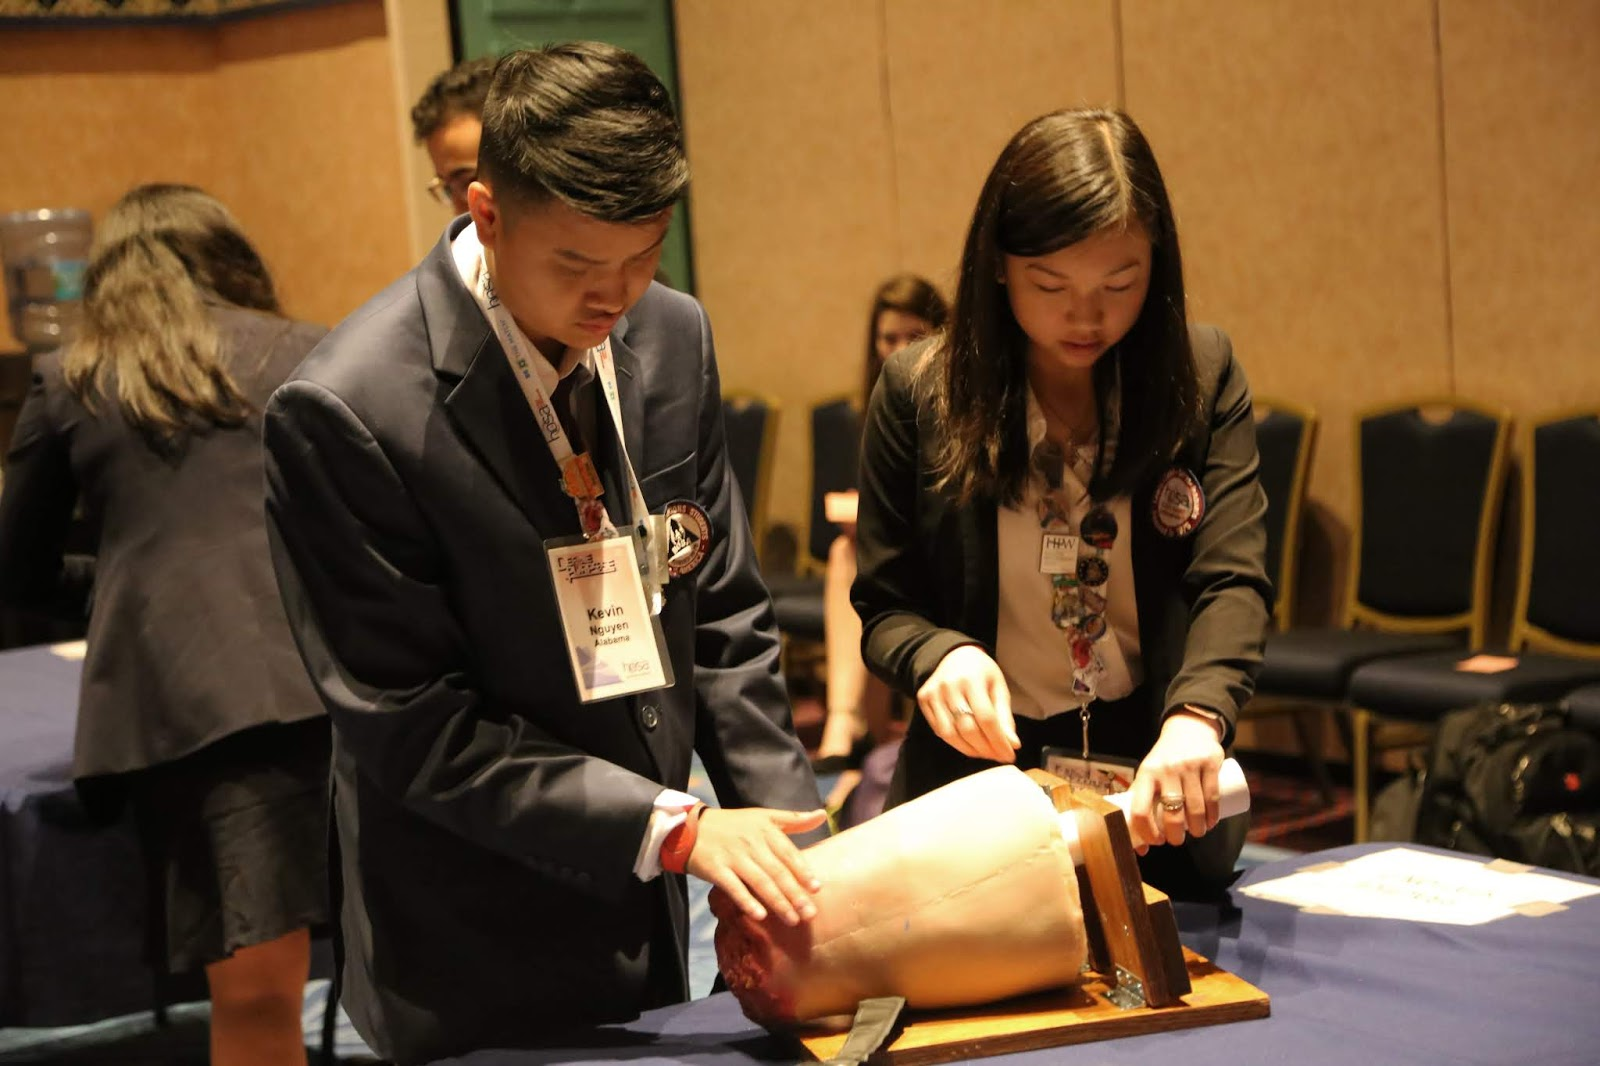 First Aid For Severe Trauma Curriculum Being Developed For